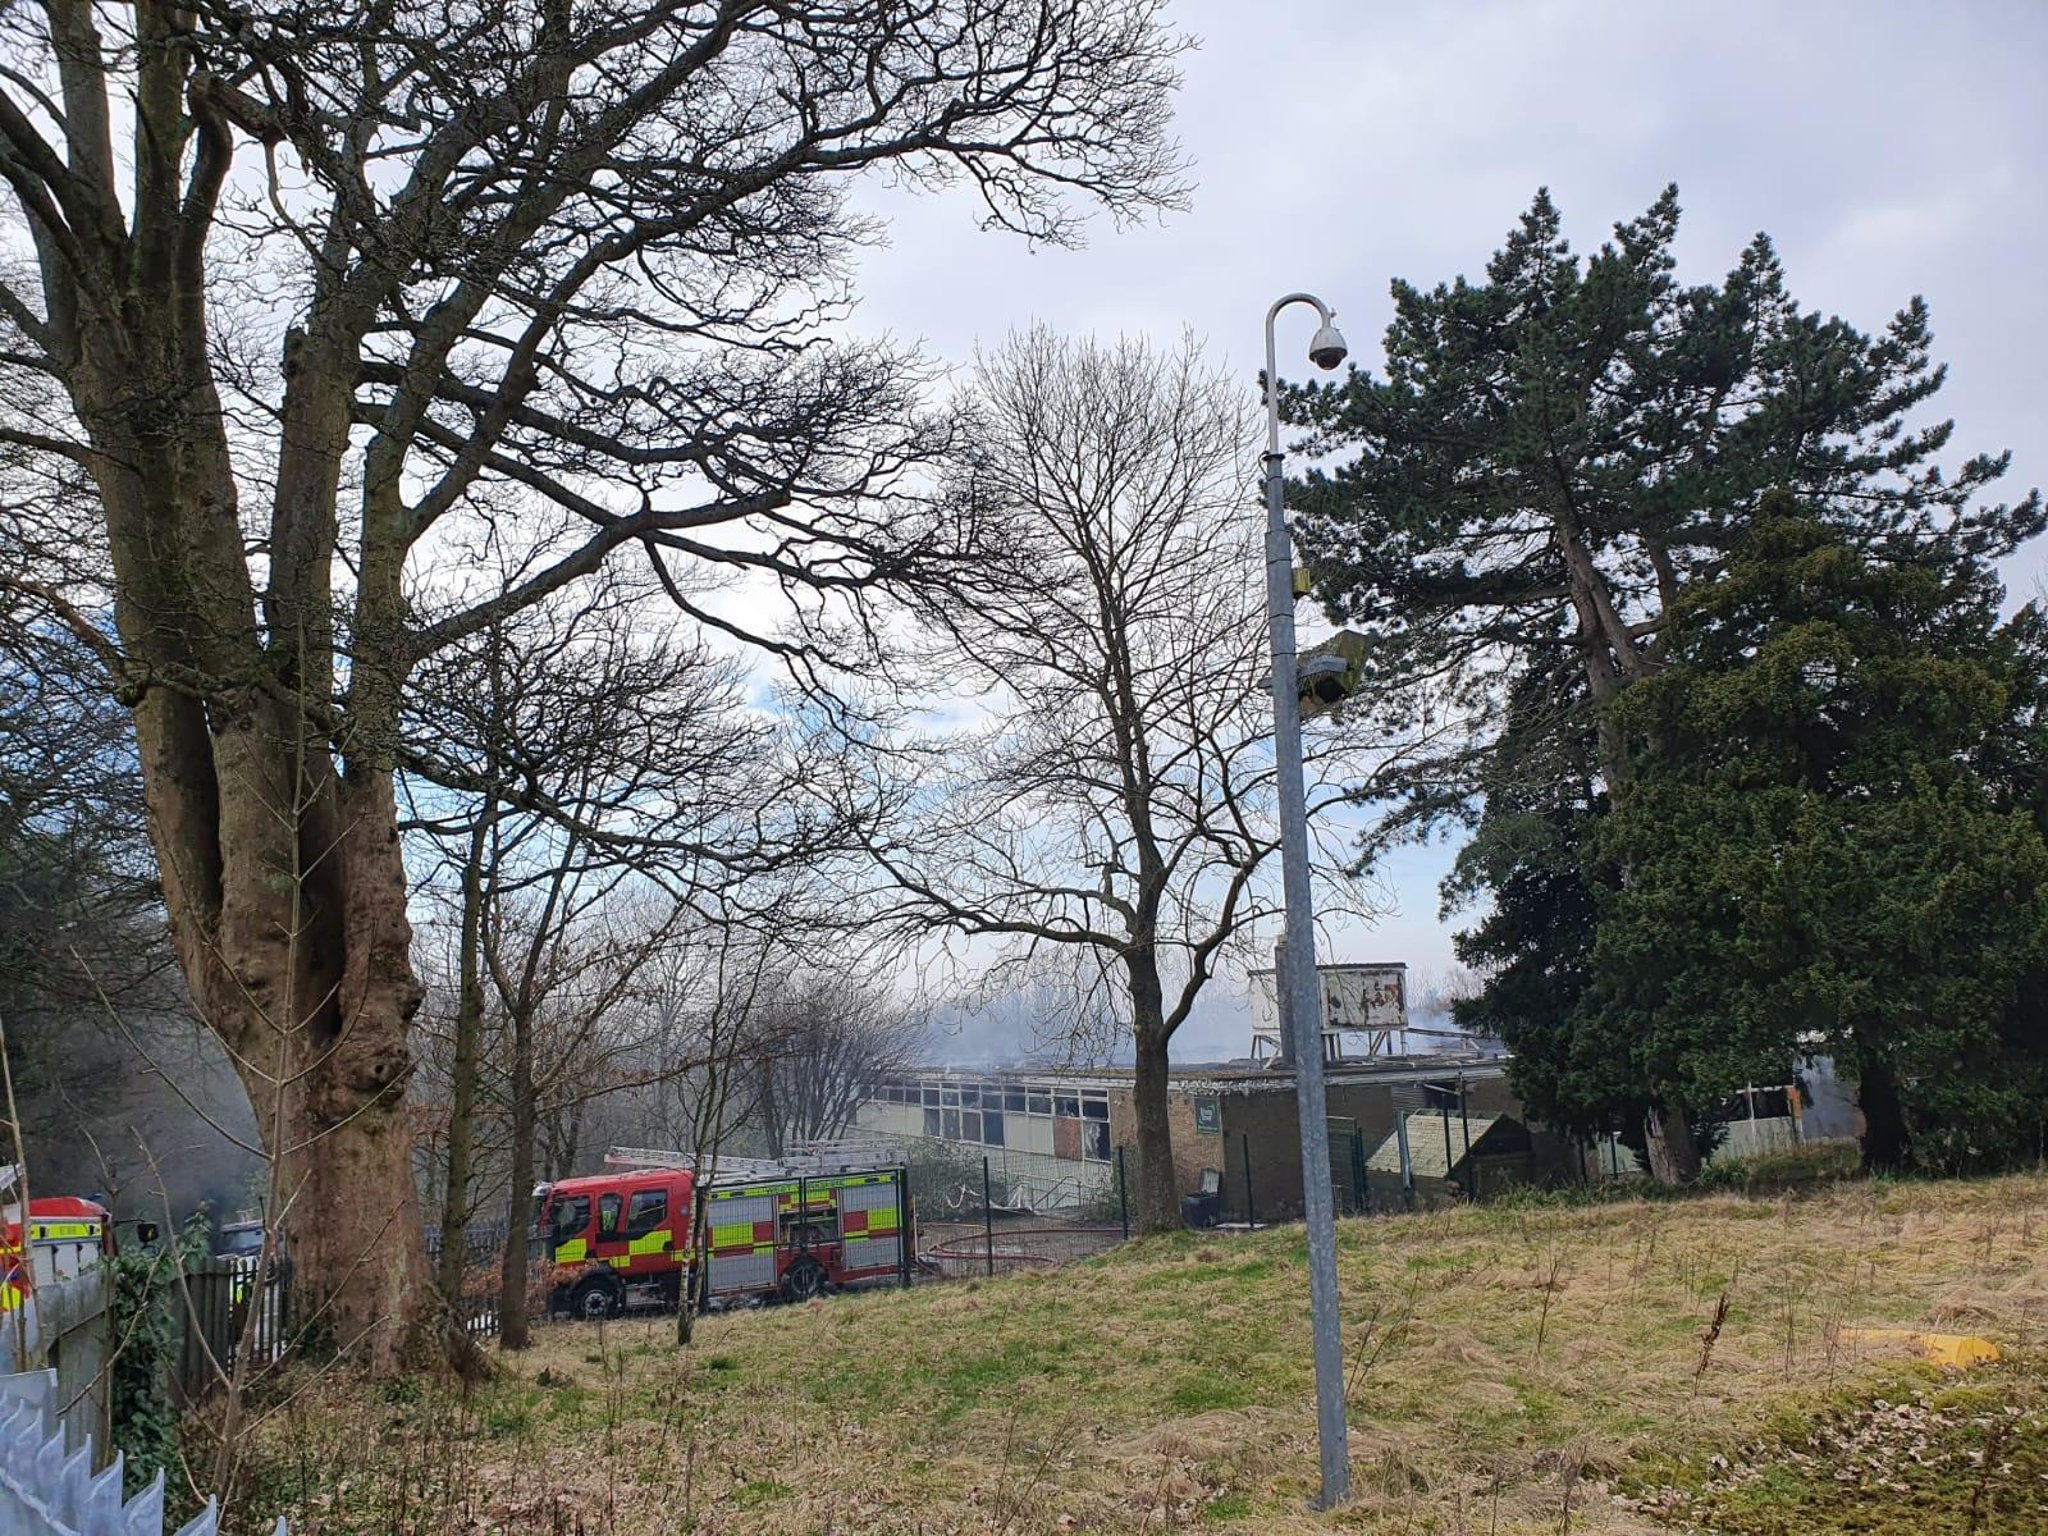 Water pumped from Roundhay Park's lake to battle fire at derelict school - which could now be demolished